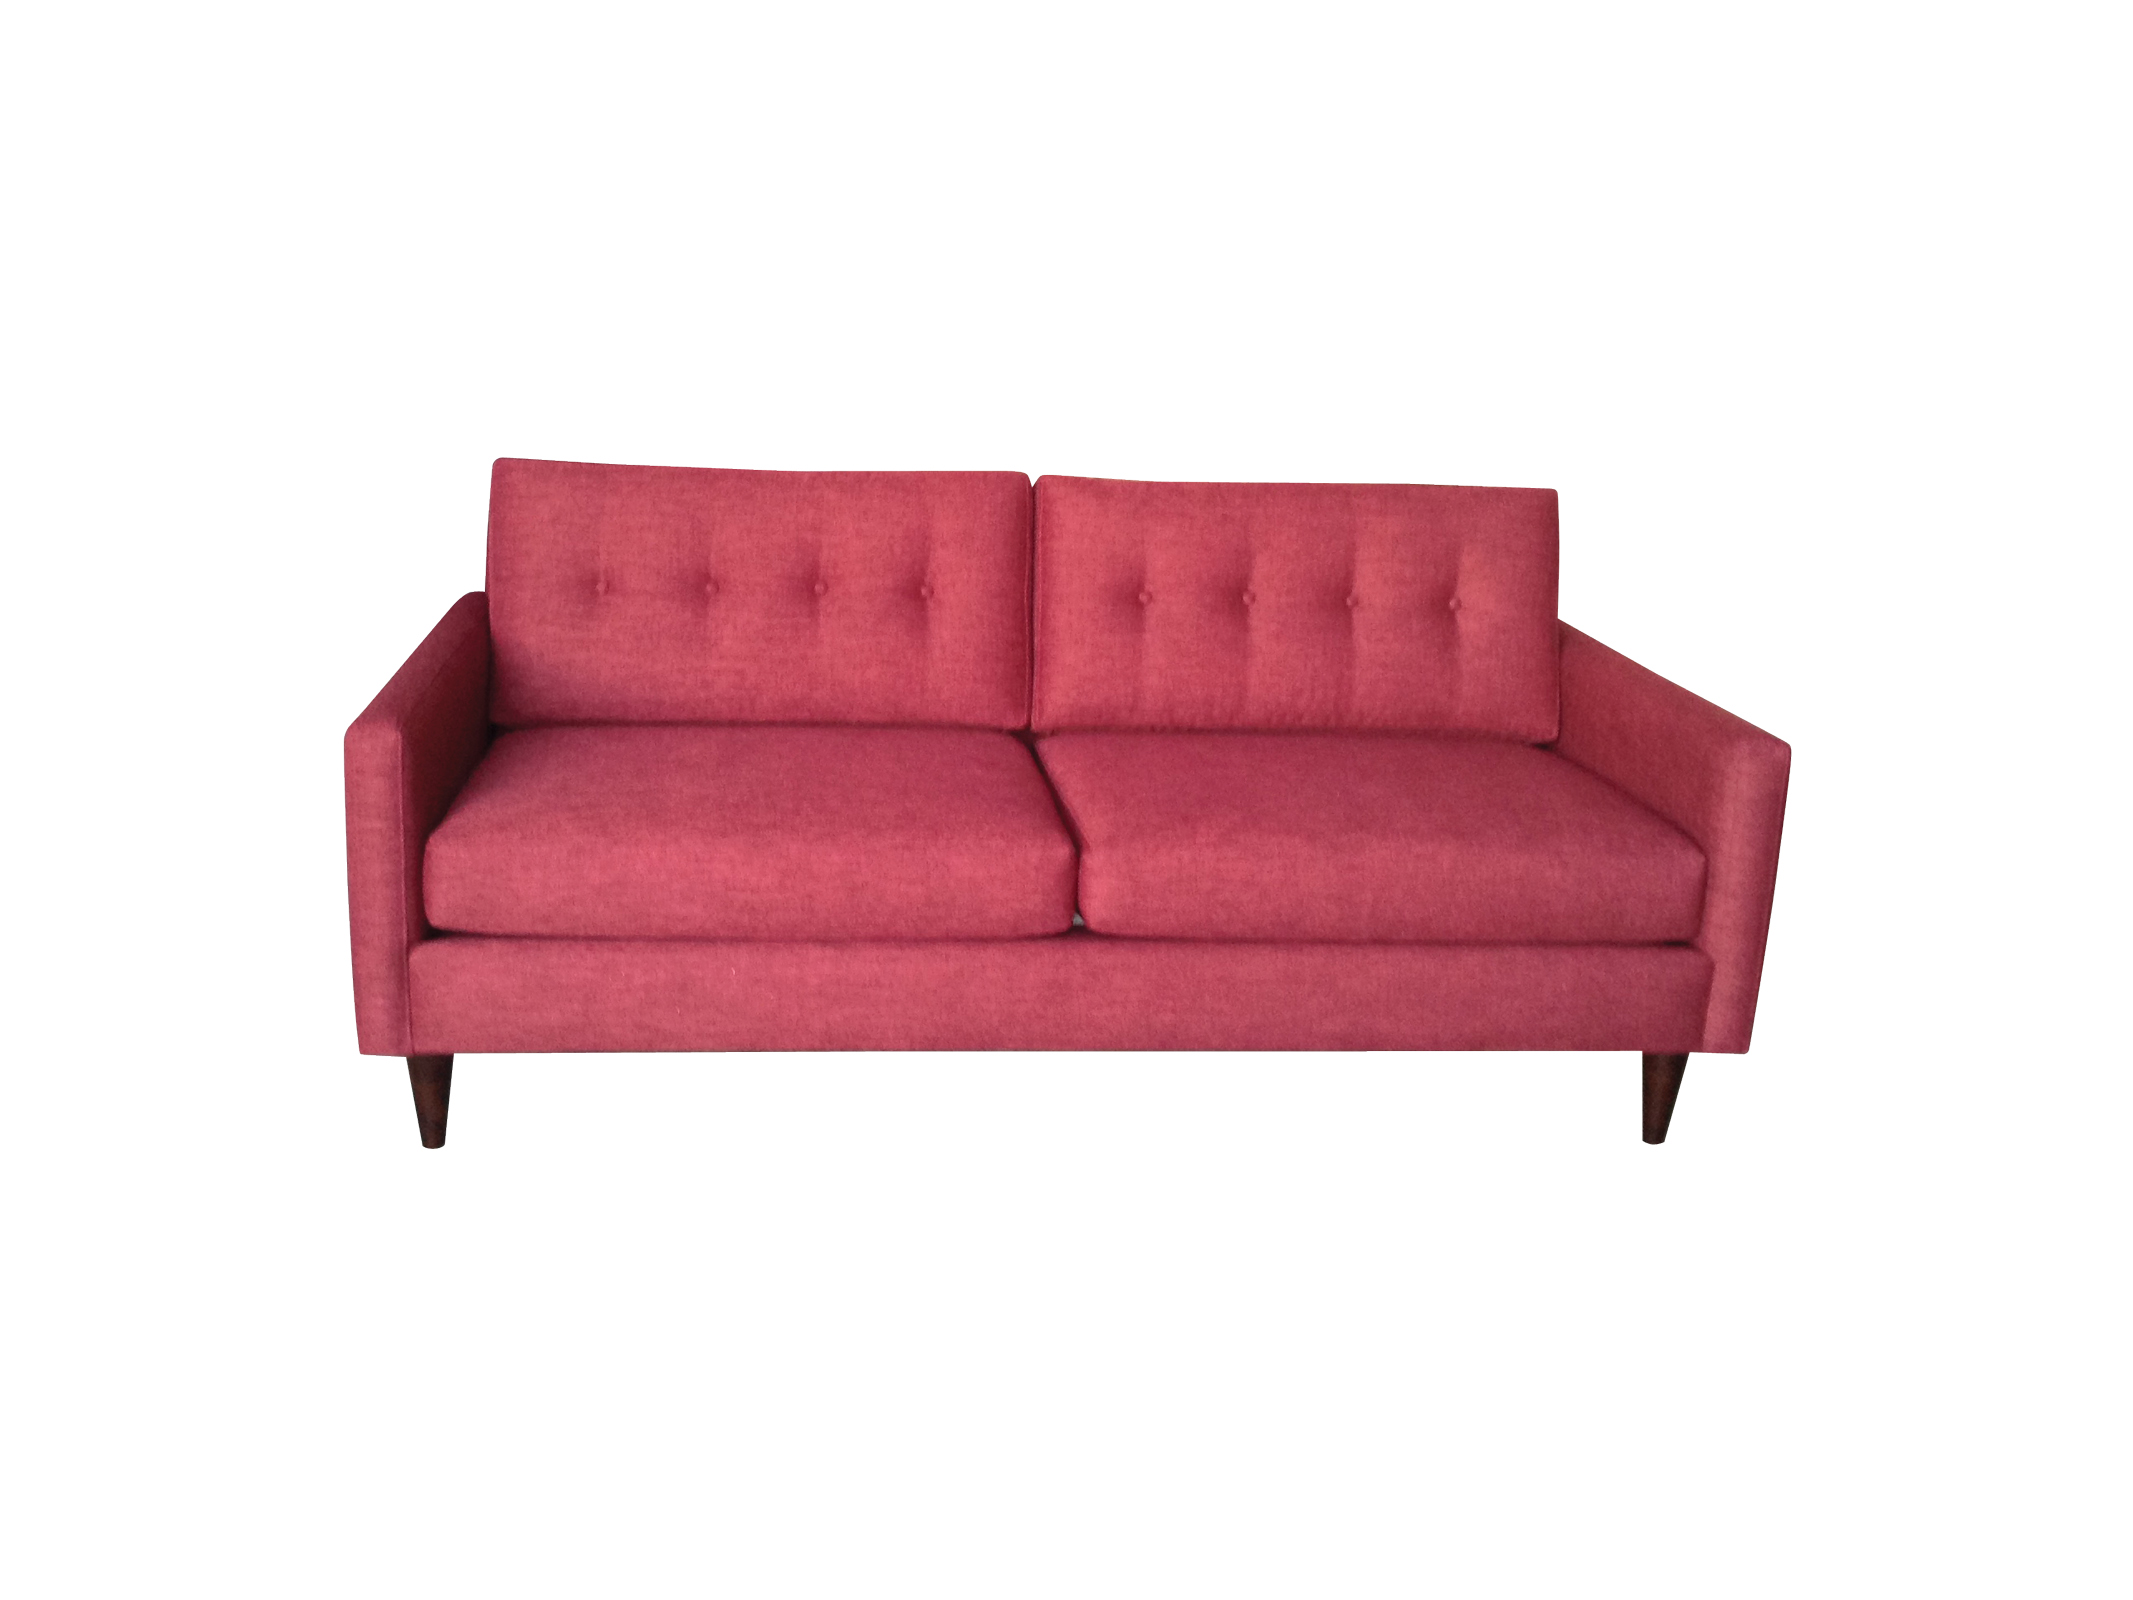 oxford_sofa_10.jpg